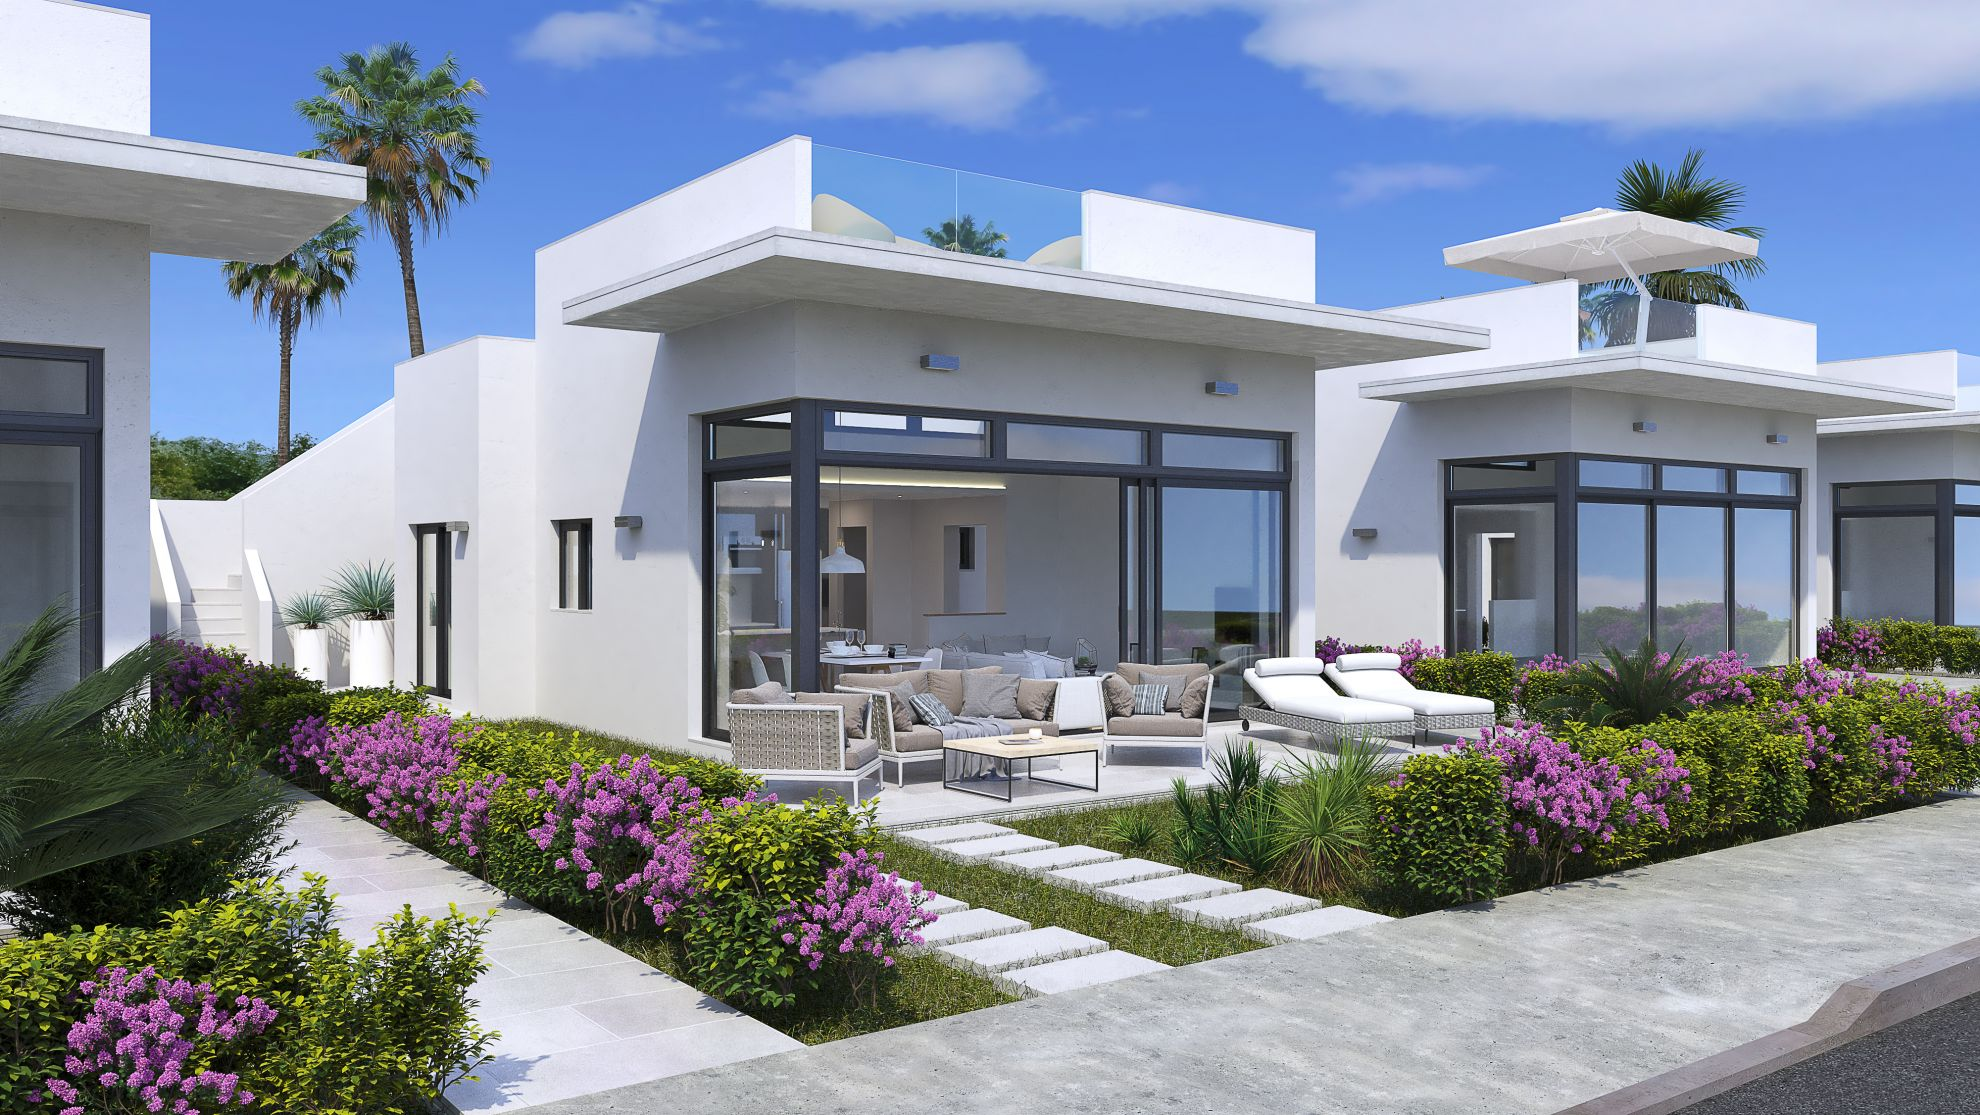 Villas in the Condado de Alhama 4